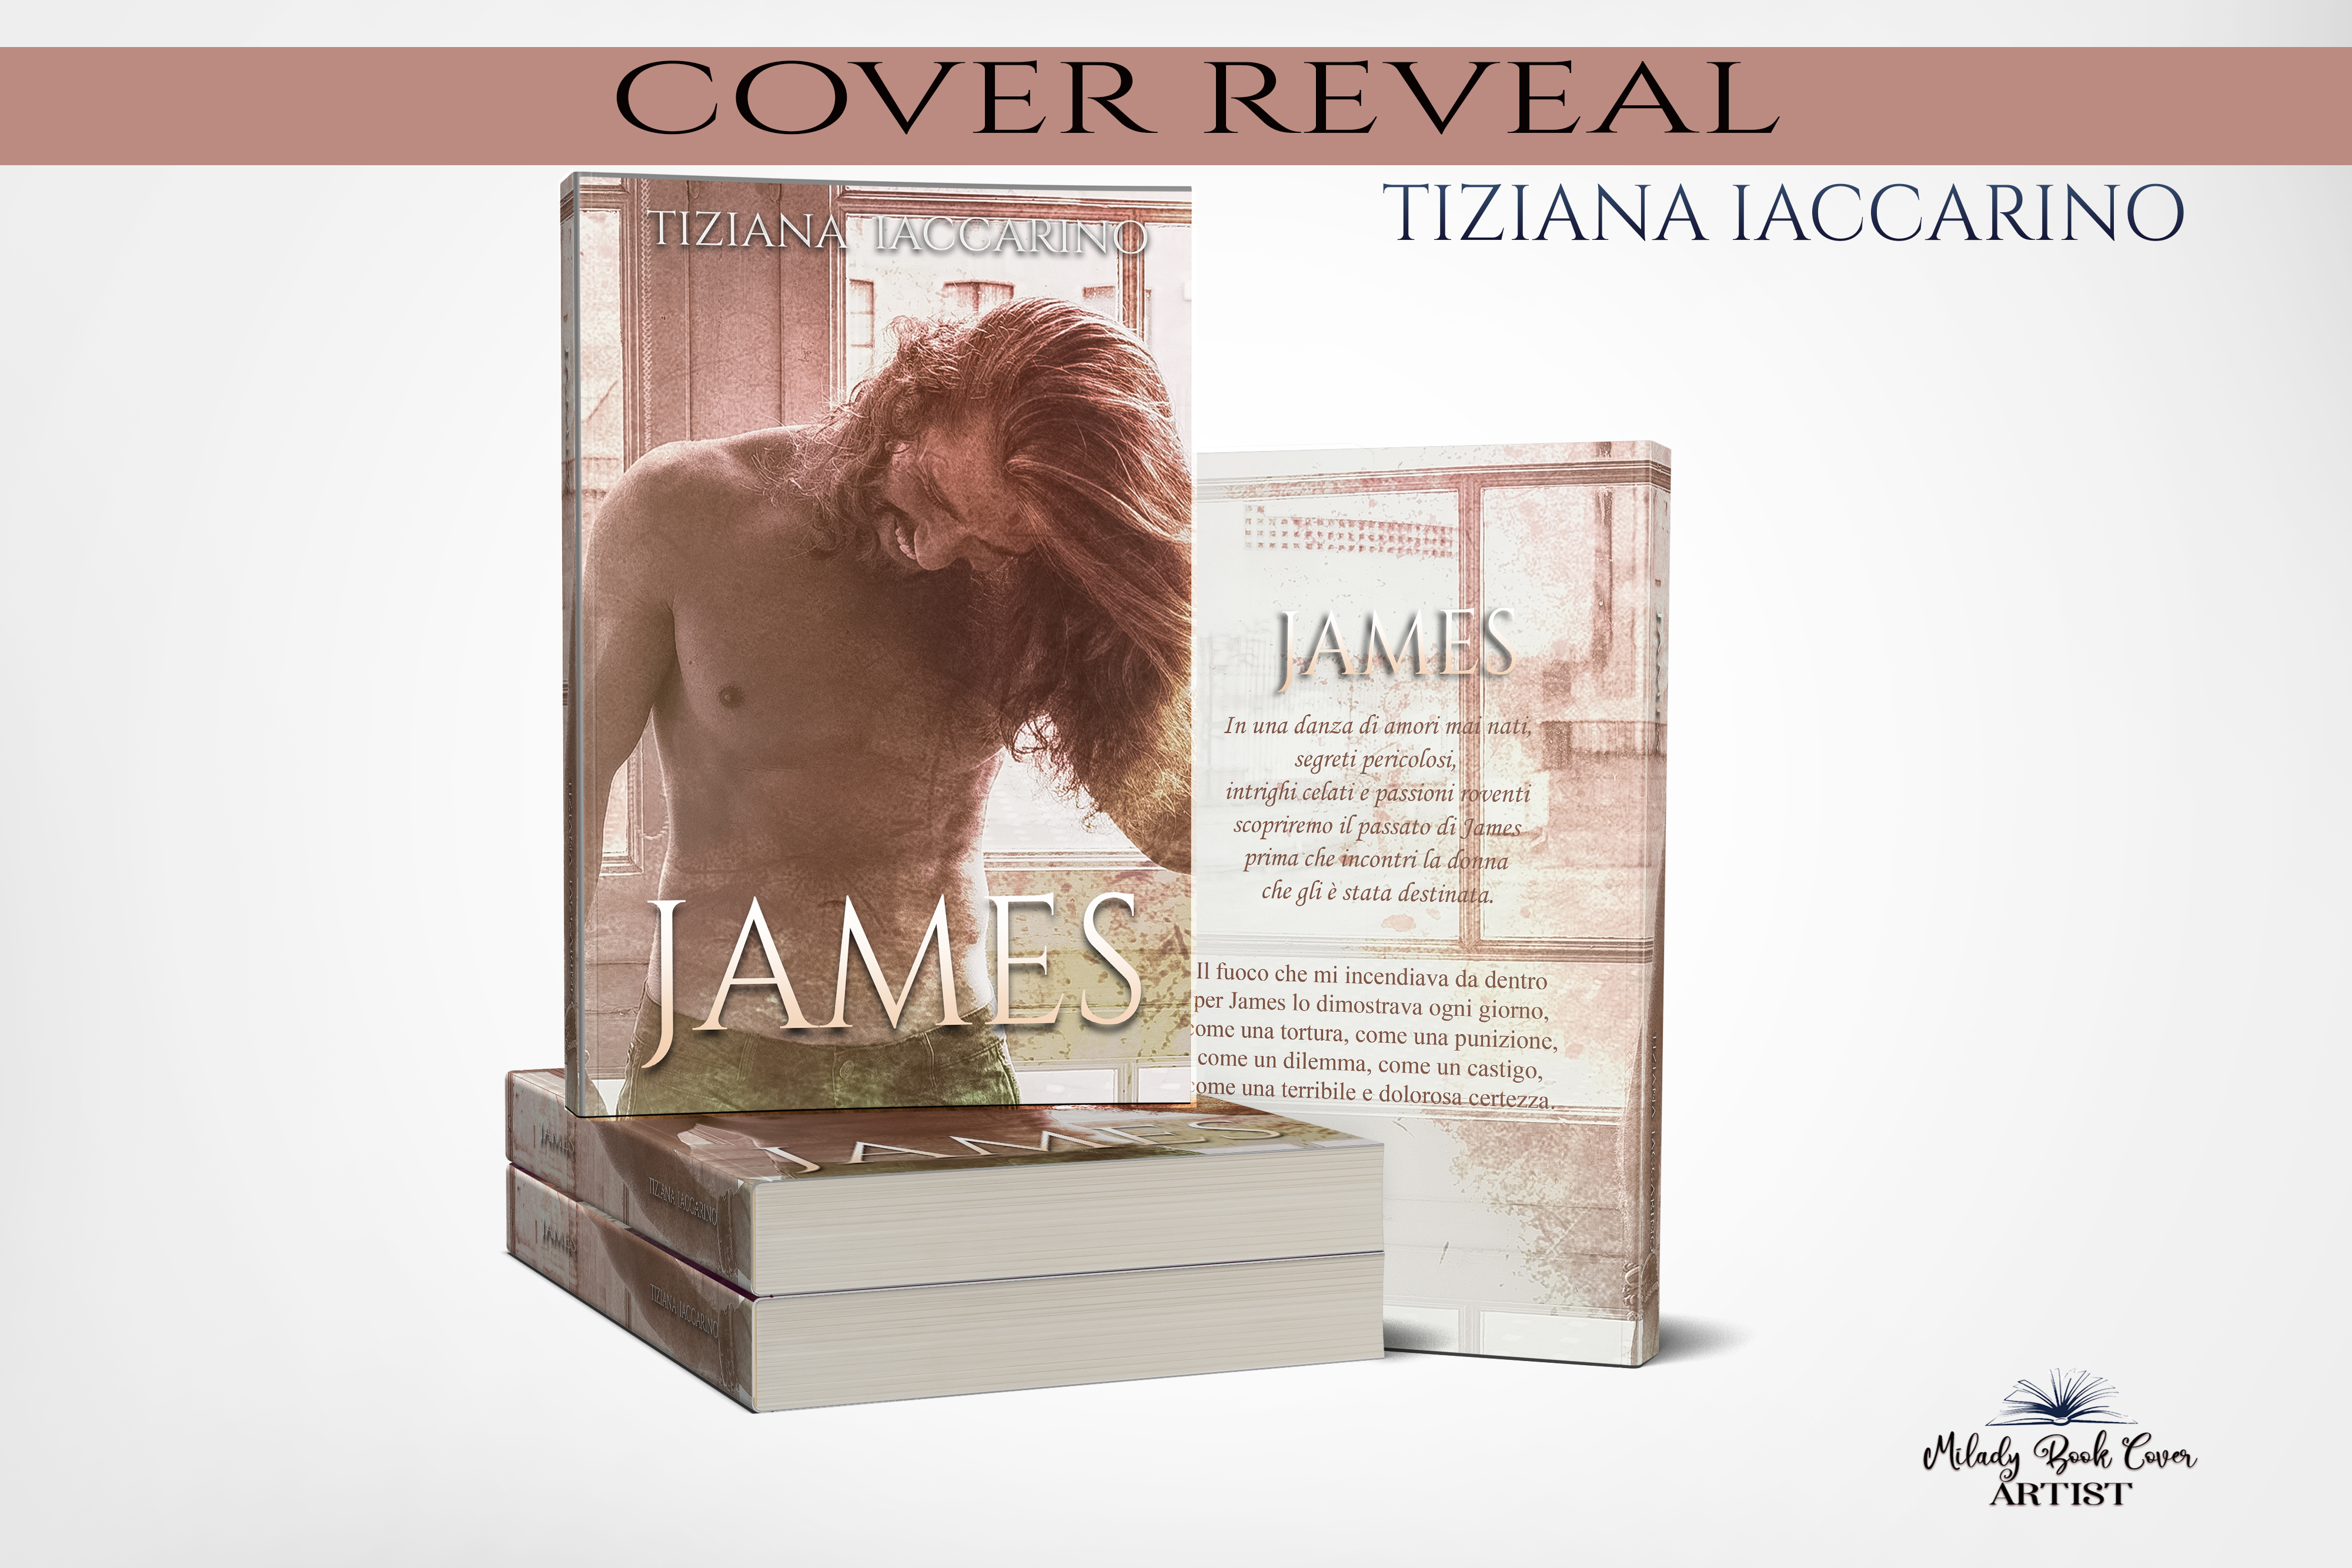 Cover Reveal. James di Tiziana Iaccarino